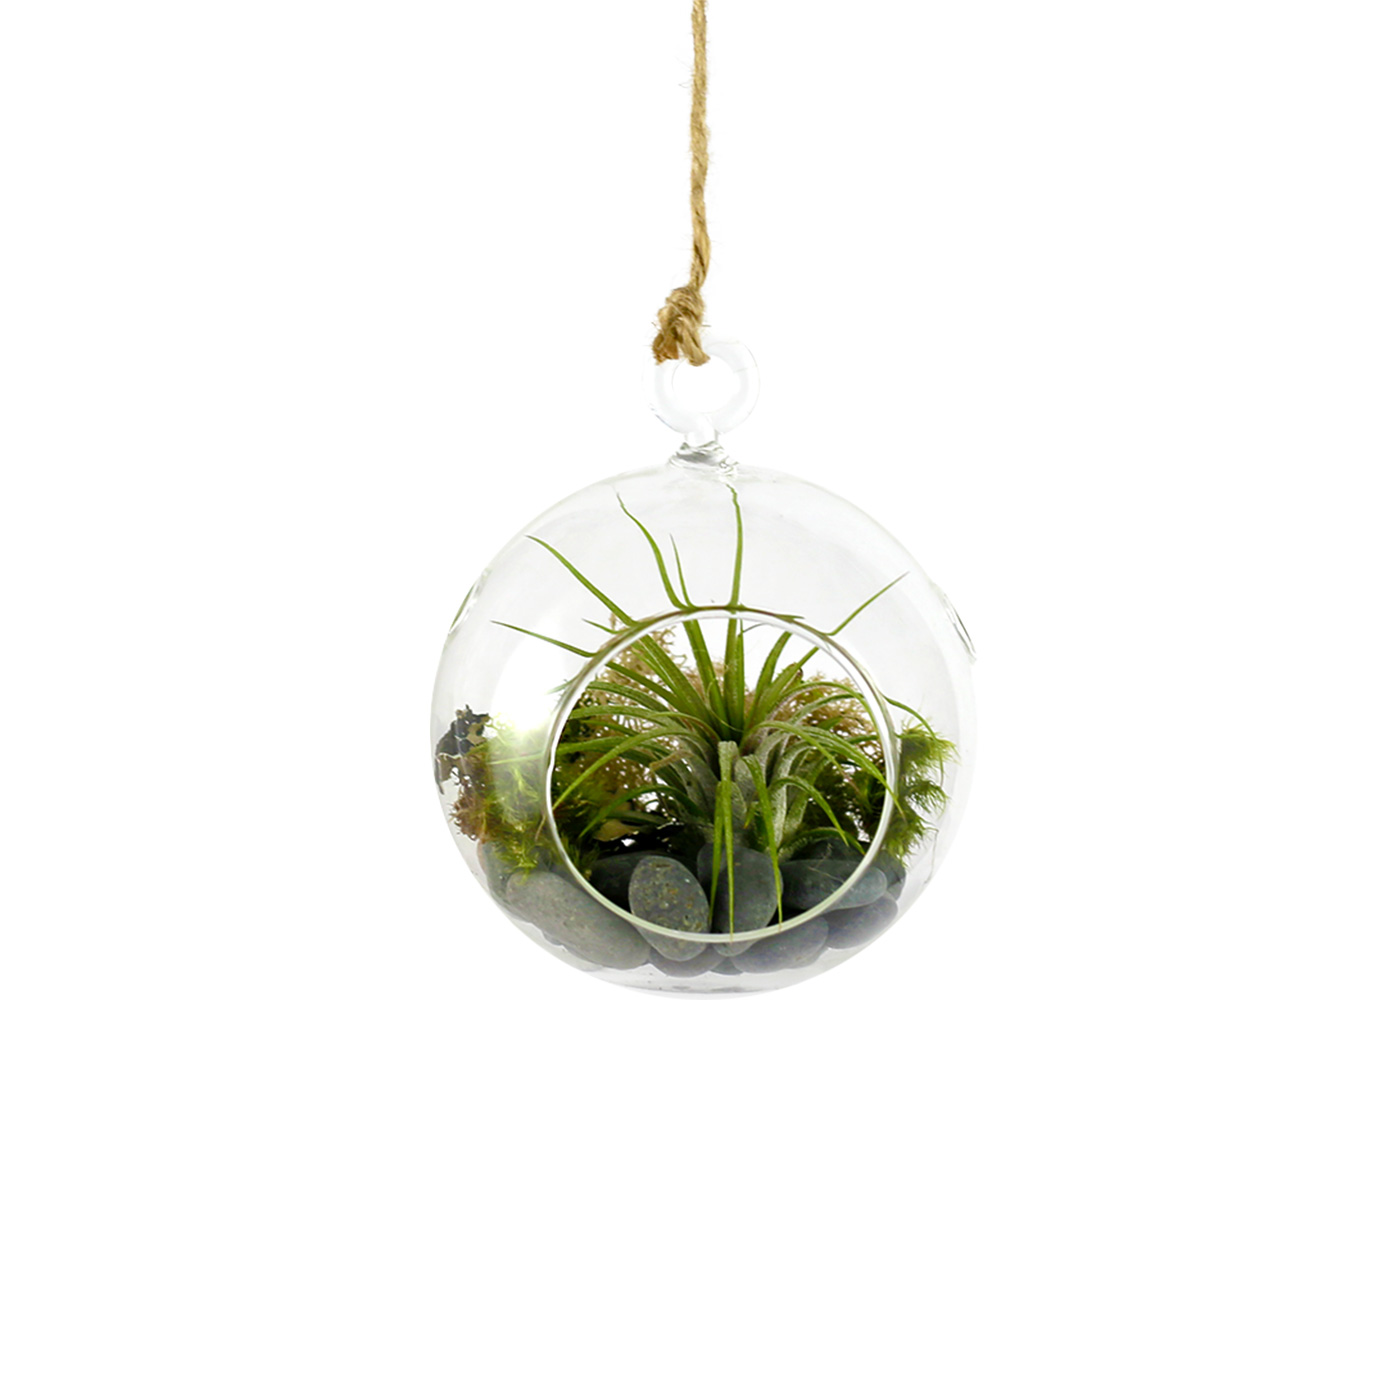 MakersKit DIY Hanging Air Plant Terrarium Kit